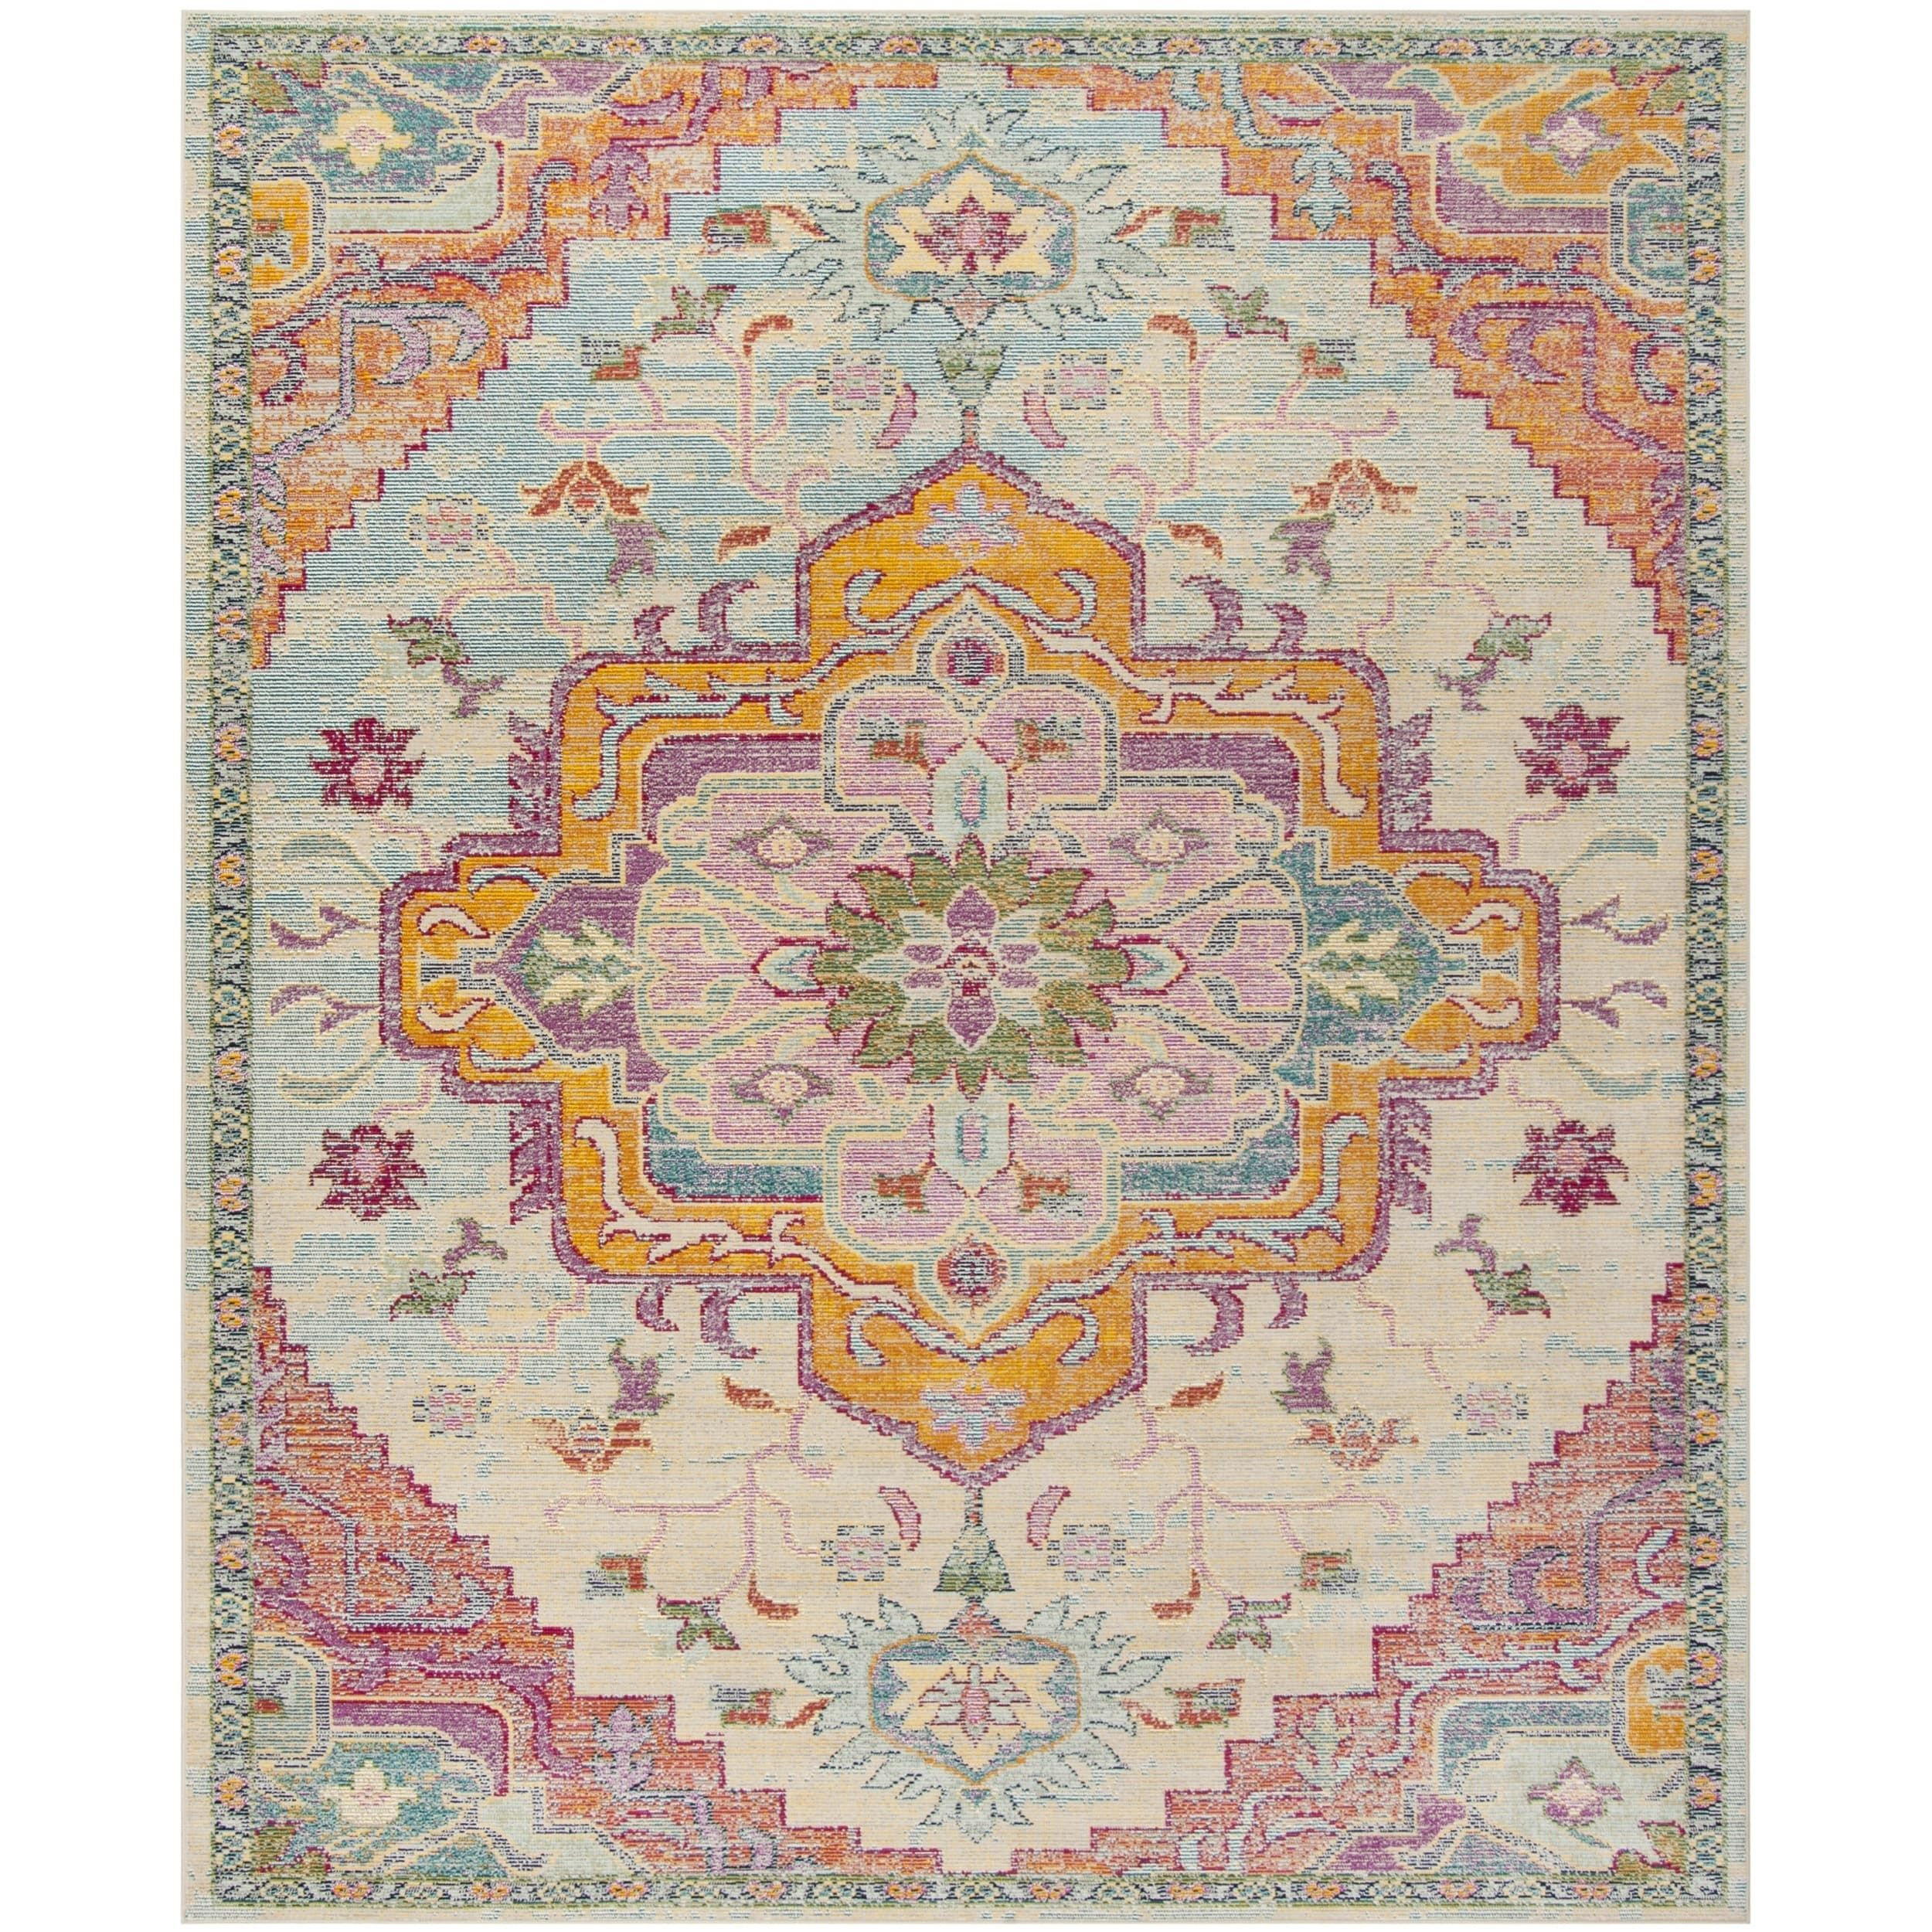 chobi beauty user bone of blue original products rug picture design rugs image light transitional